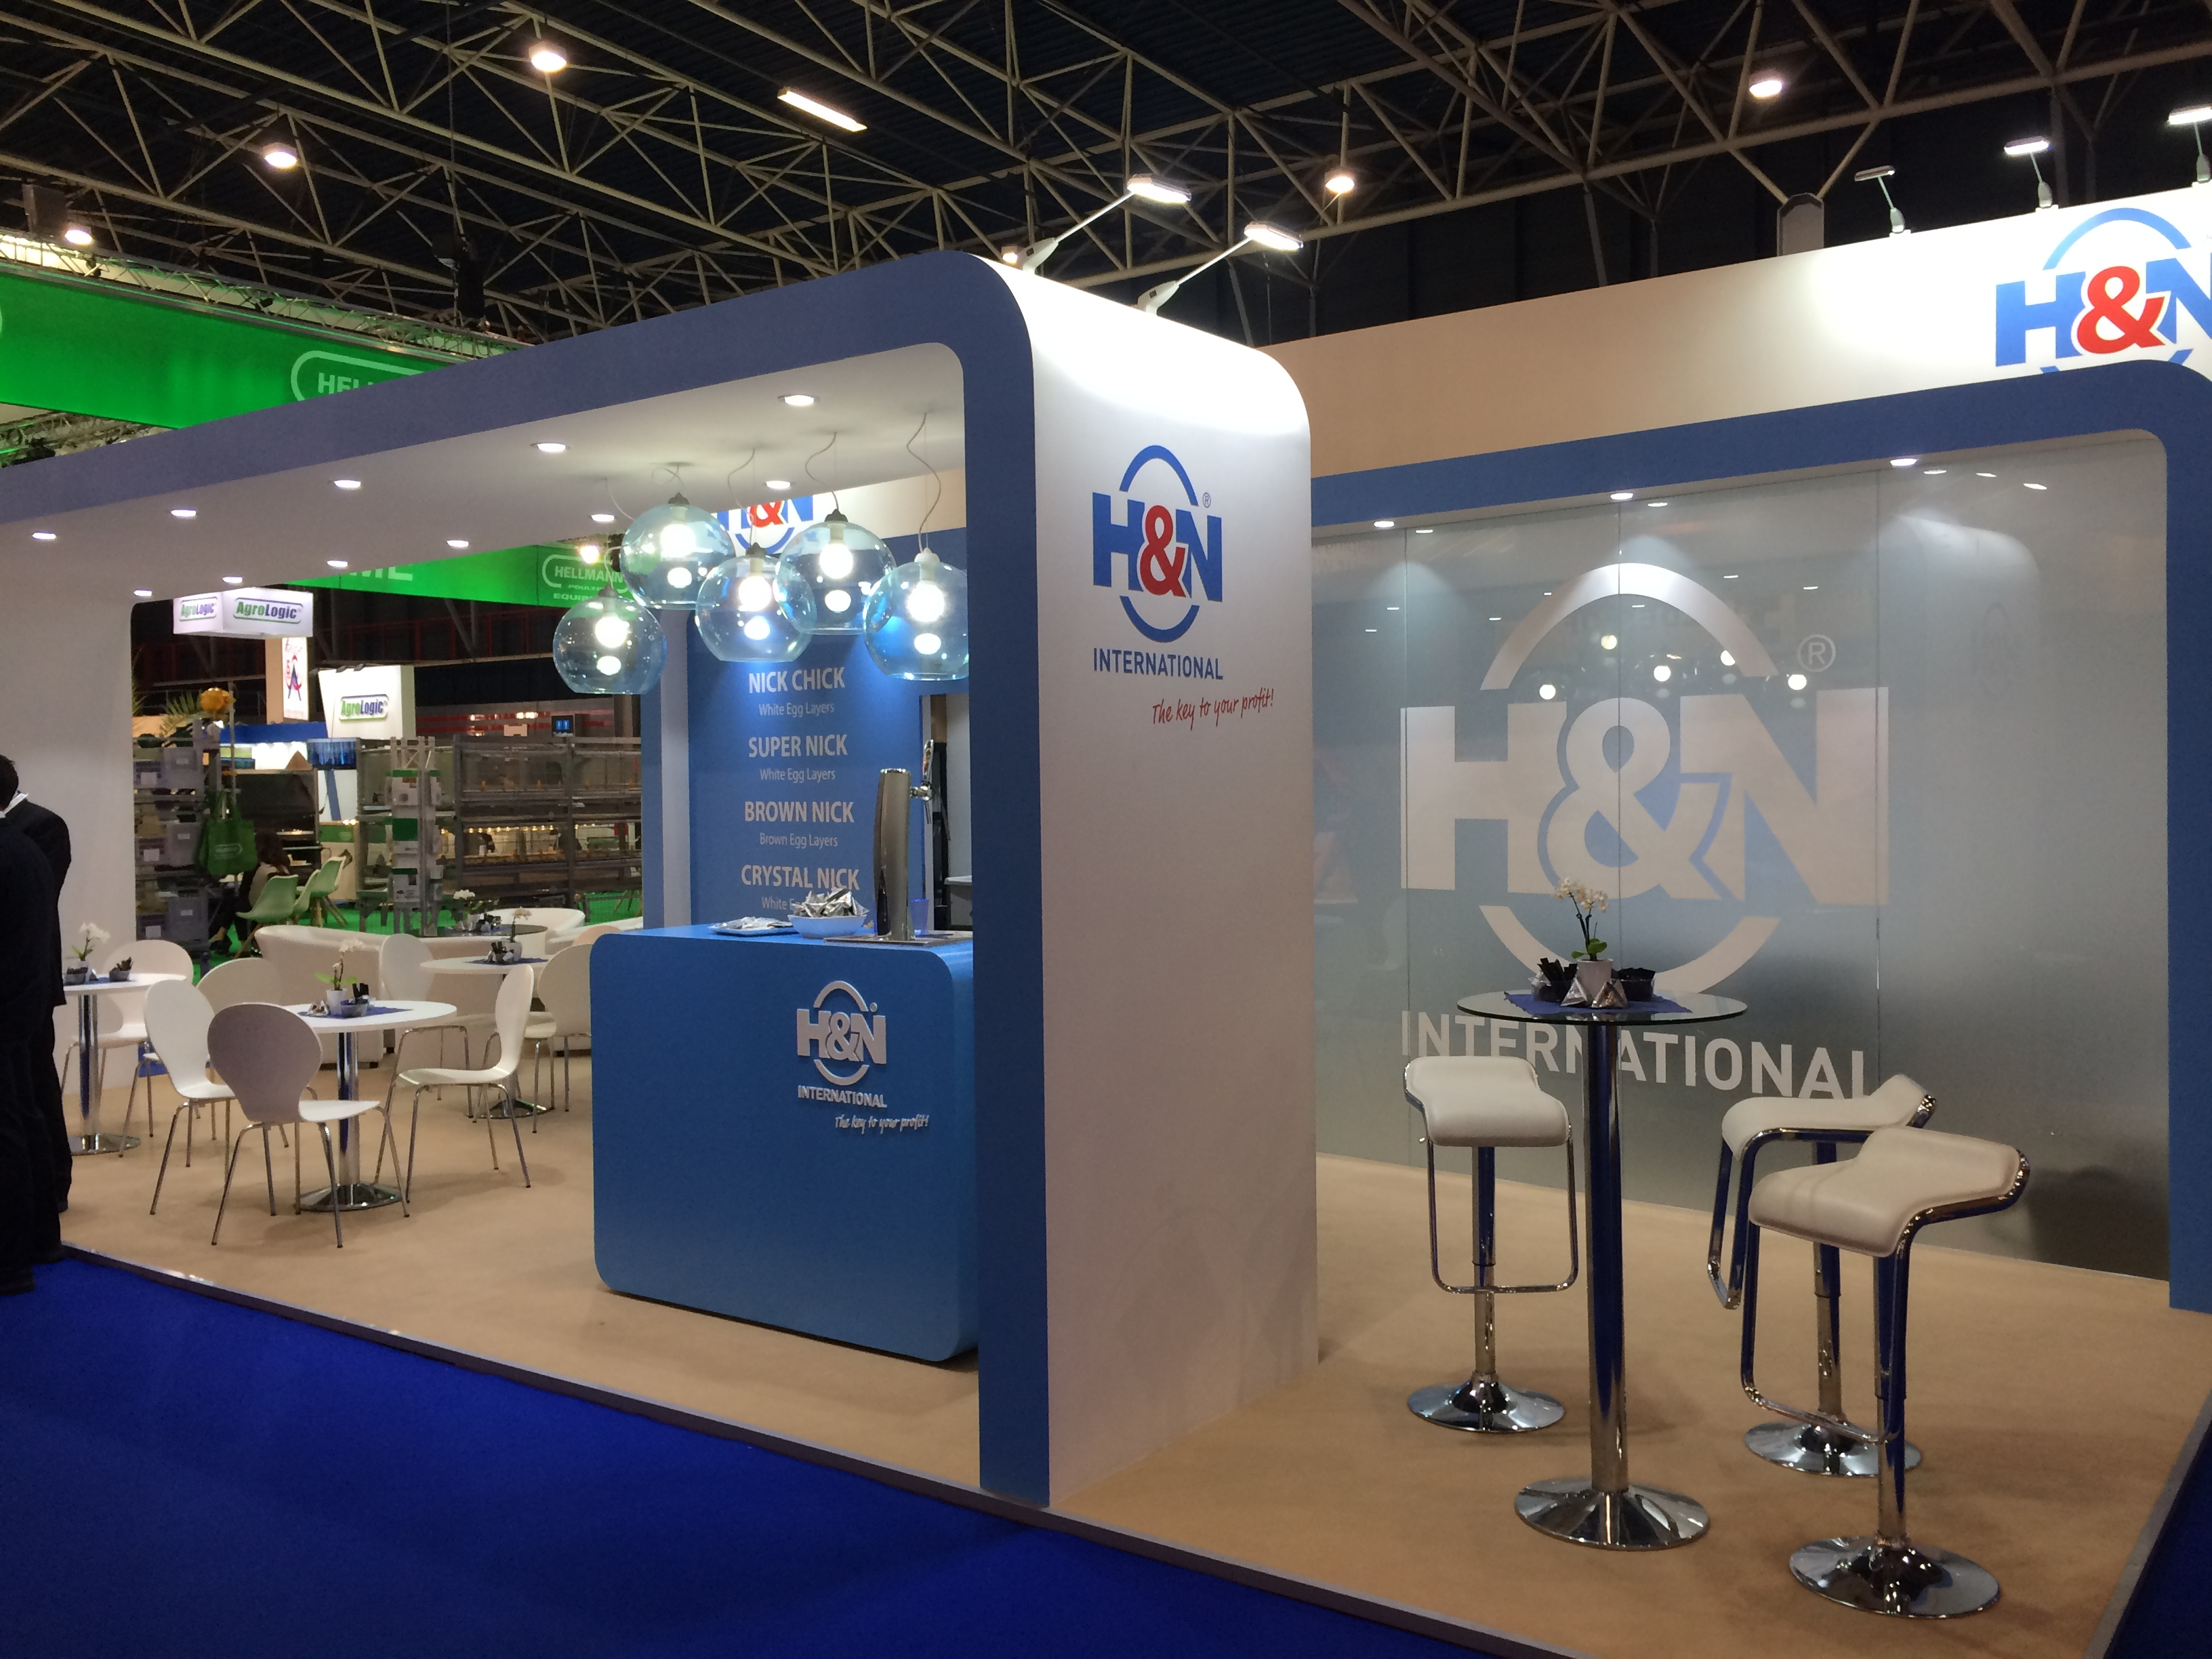 Custom built exhibition stand for H&N International at Jaarbeurs Utrecht, The Netherlands